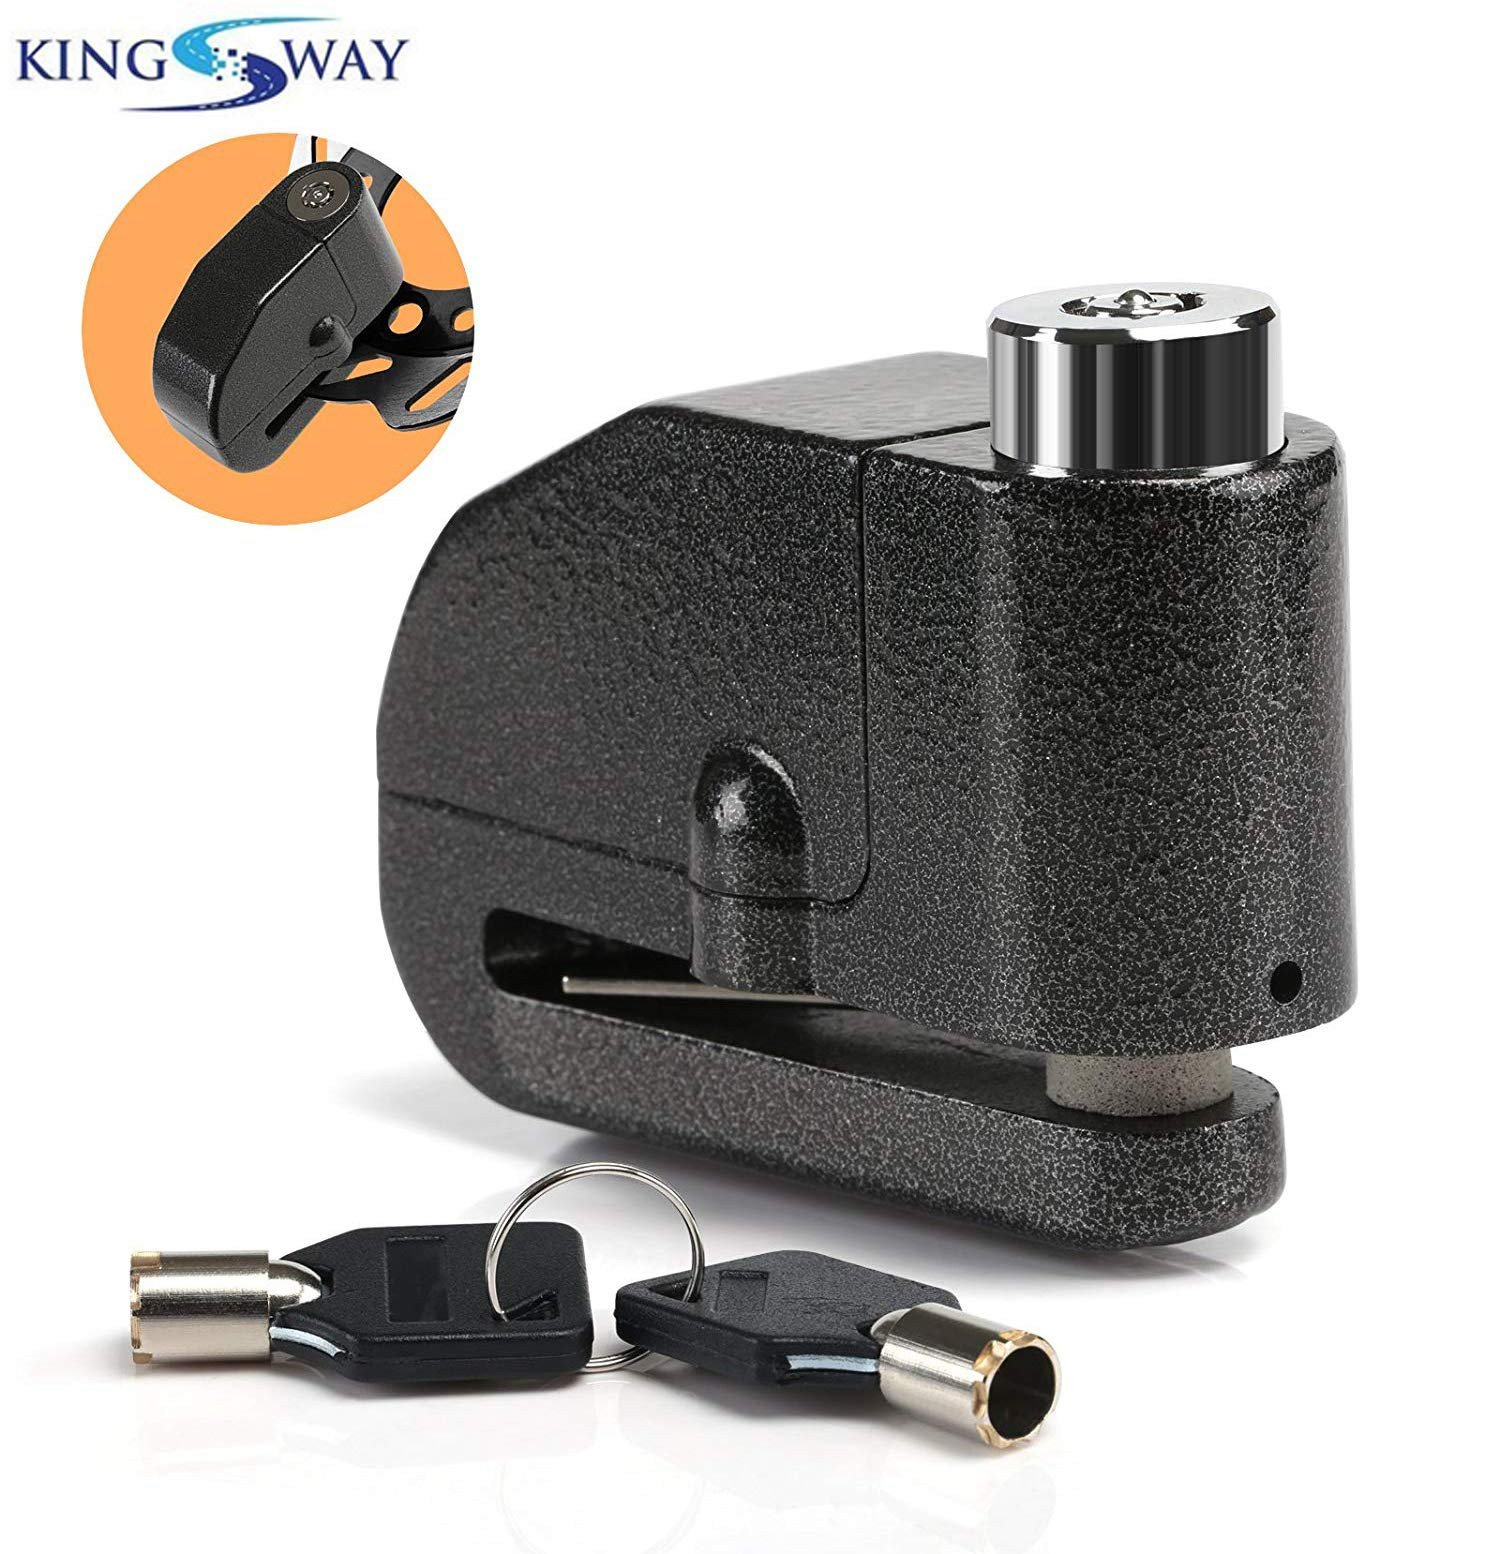 Kingsway alarm disc lock motorbike anti-theft disc brake lock with 110db alarm sound for motorcycle bike scooter product image